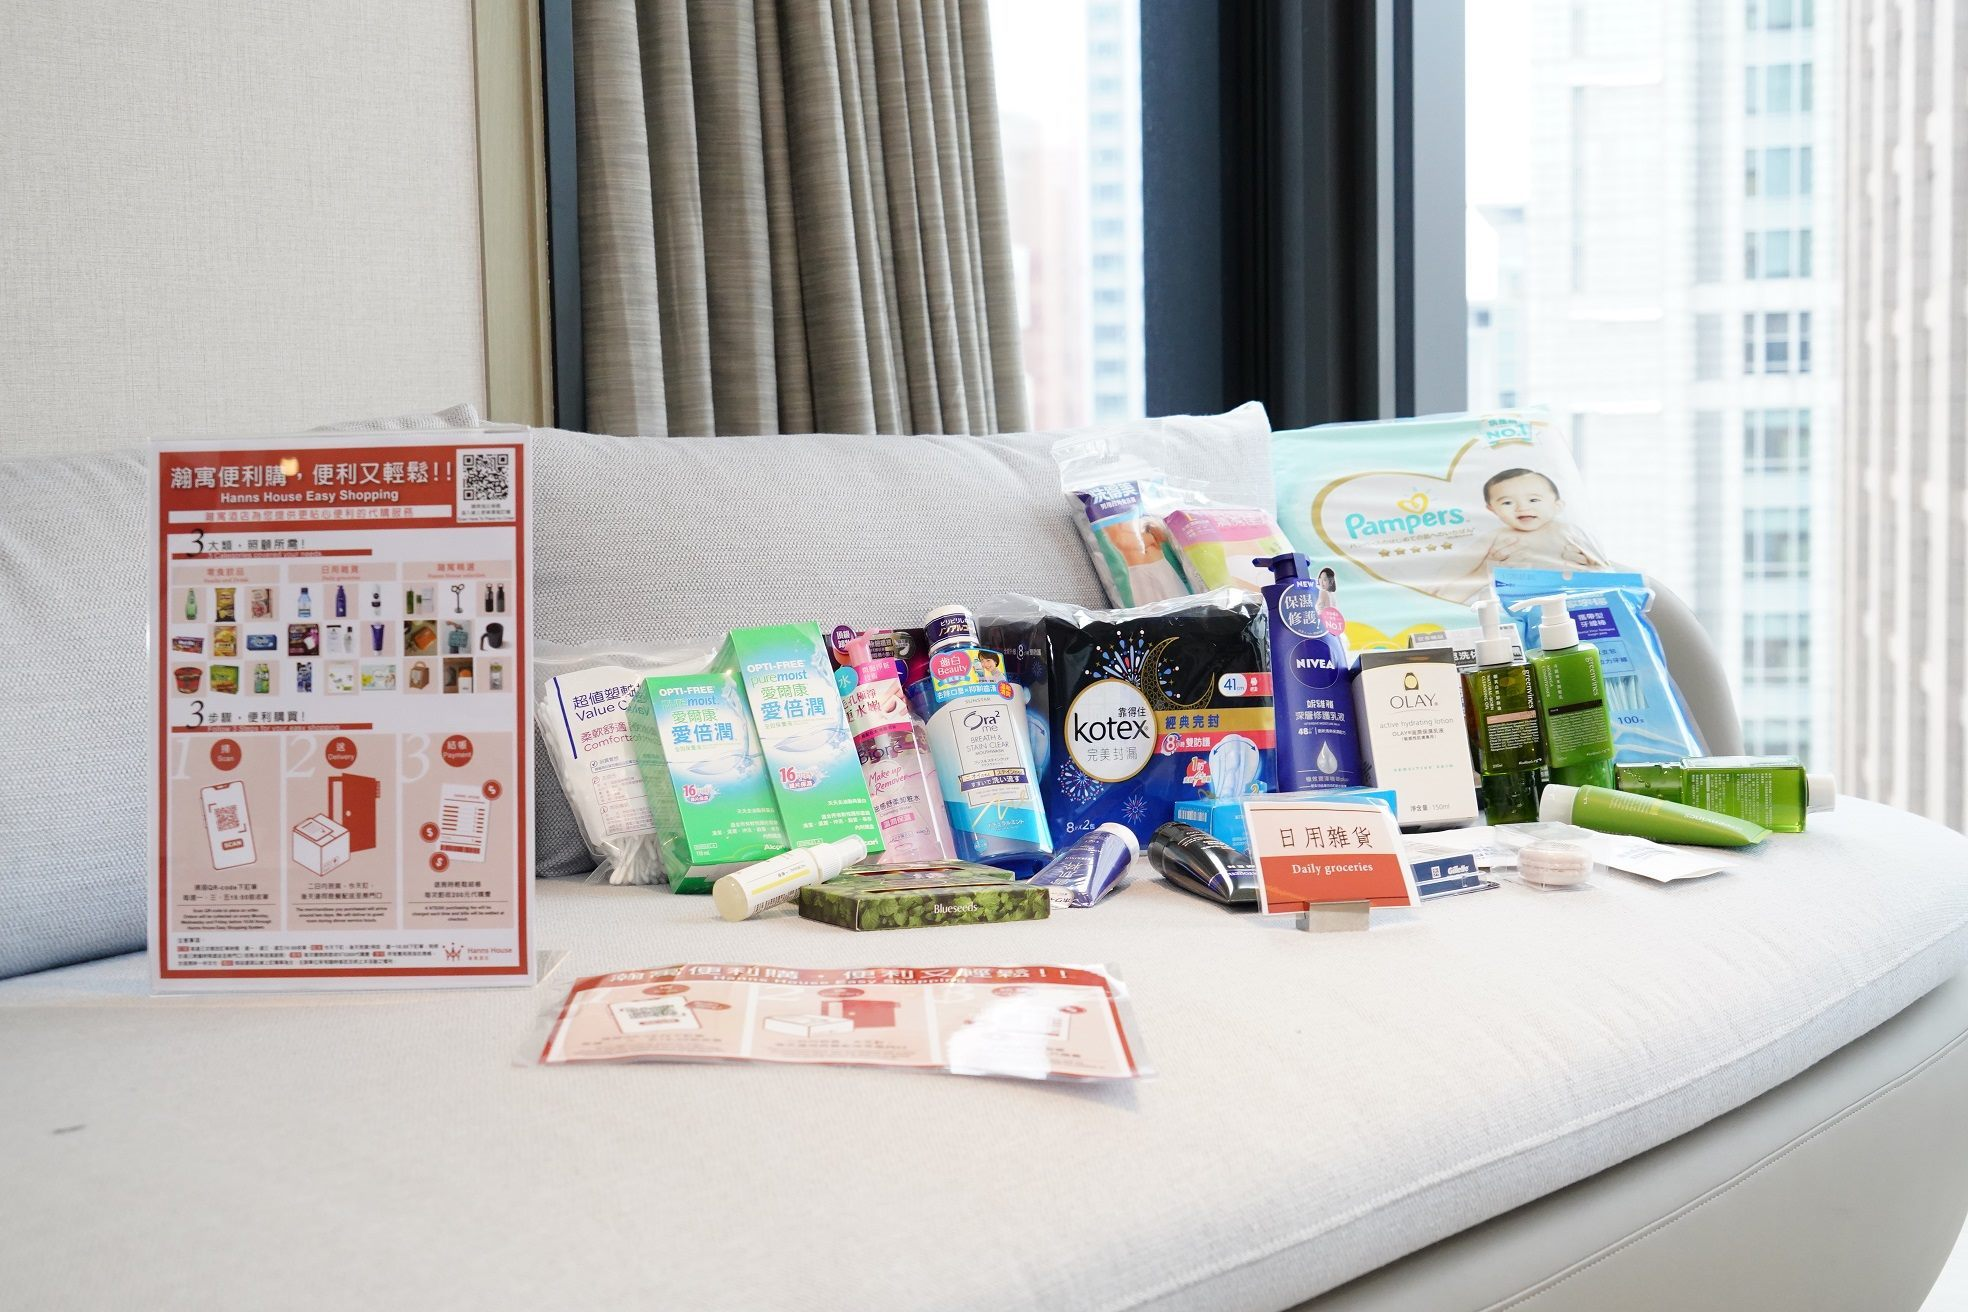 Quarantined guests may purchase selected groceries through the hotel